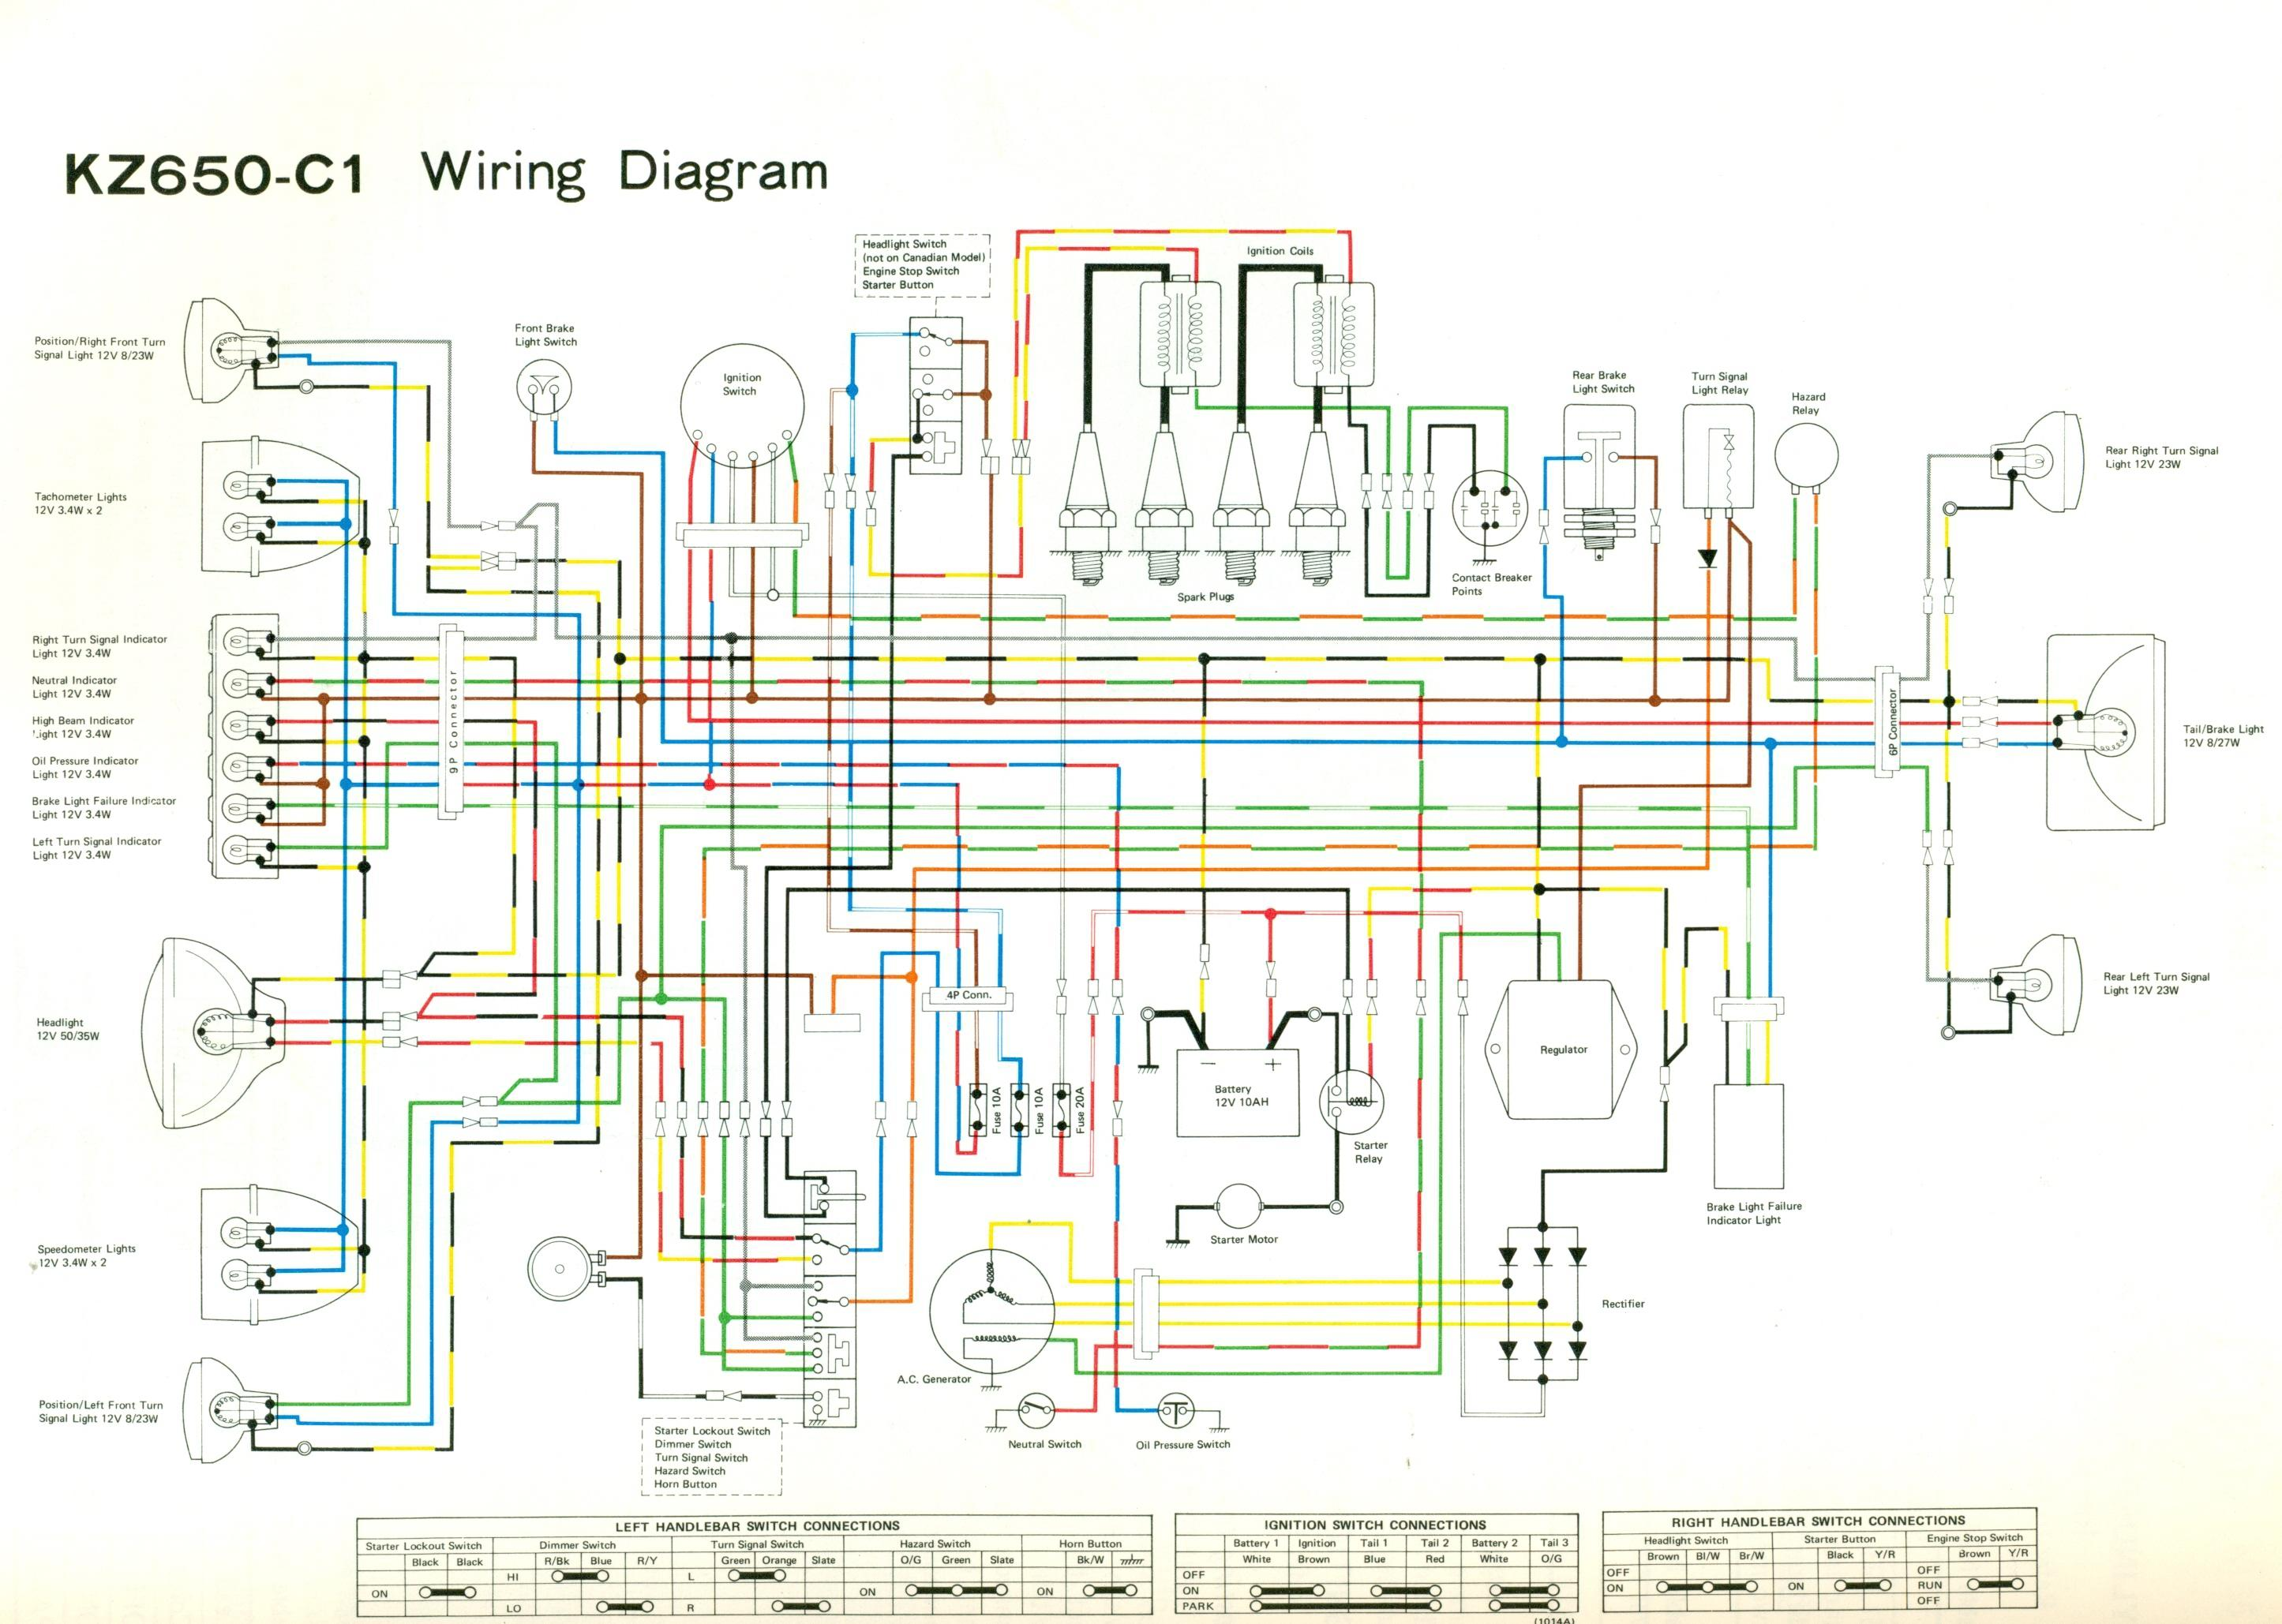 Wiring Diagrams Motorcycle Battery Diagram Kz650 C